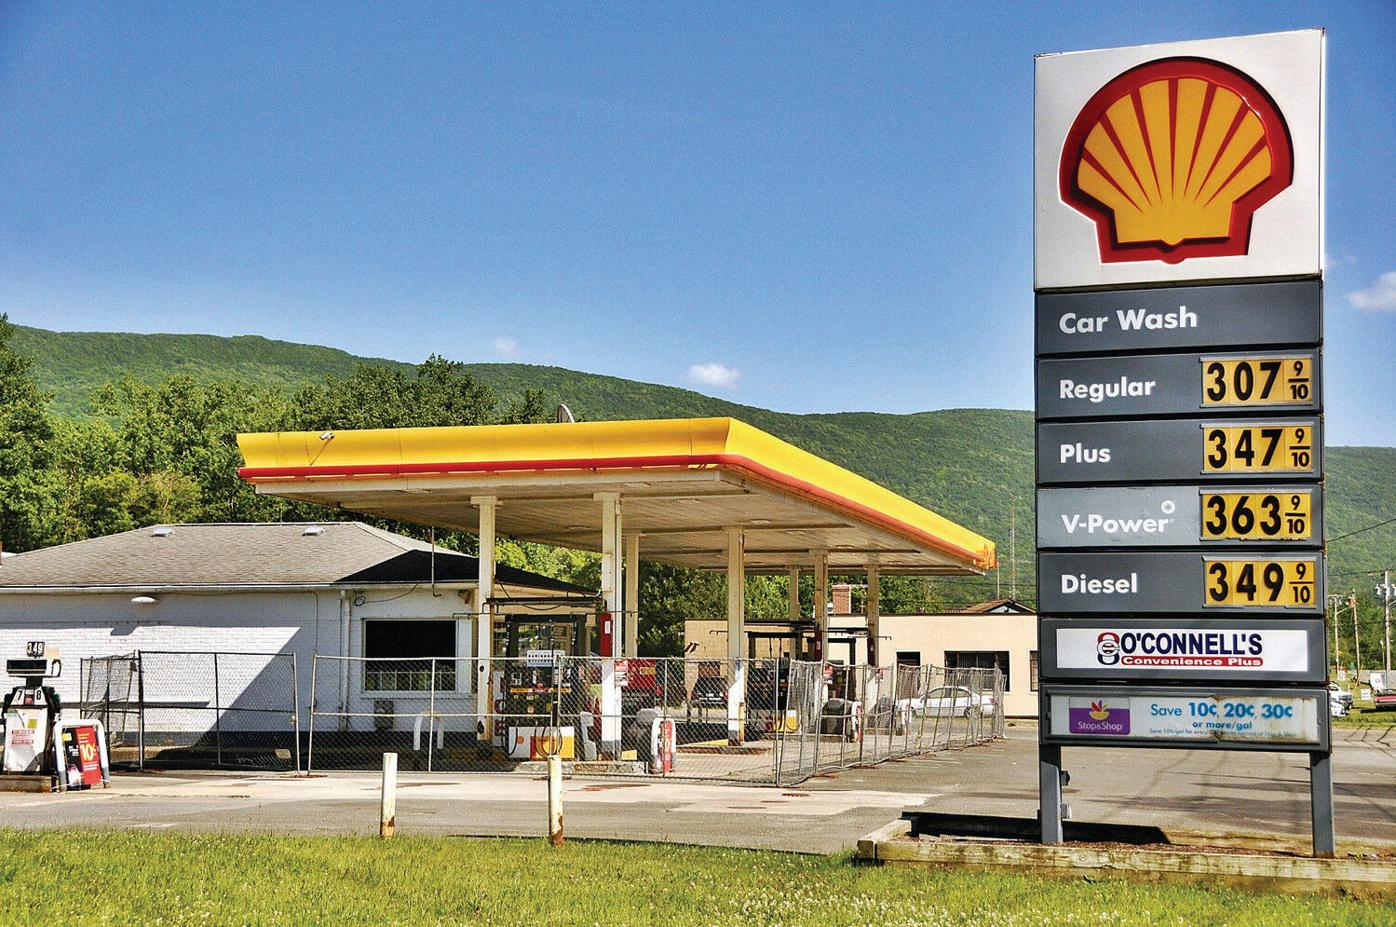 Shell latest gas station to close in North County